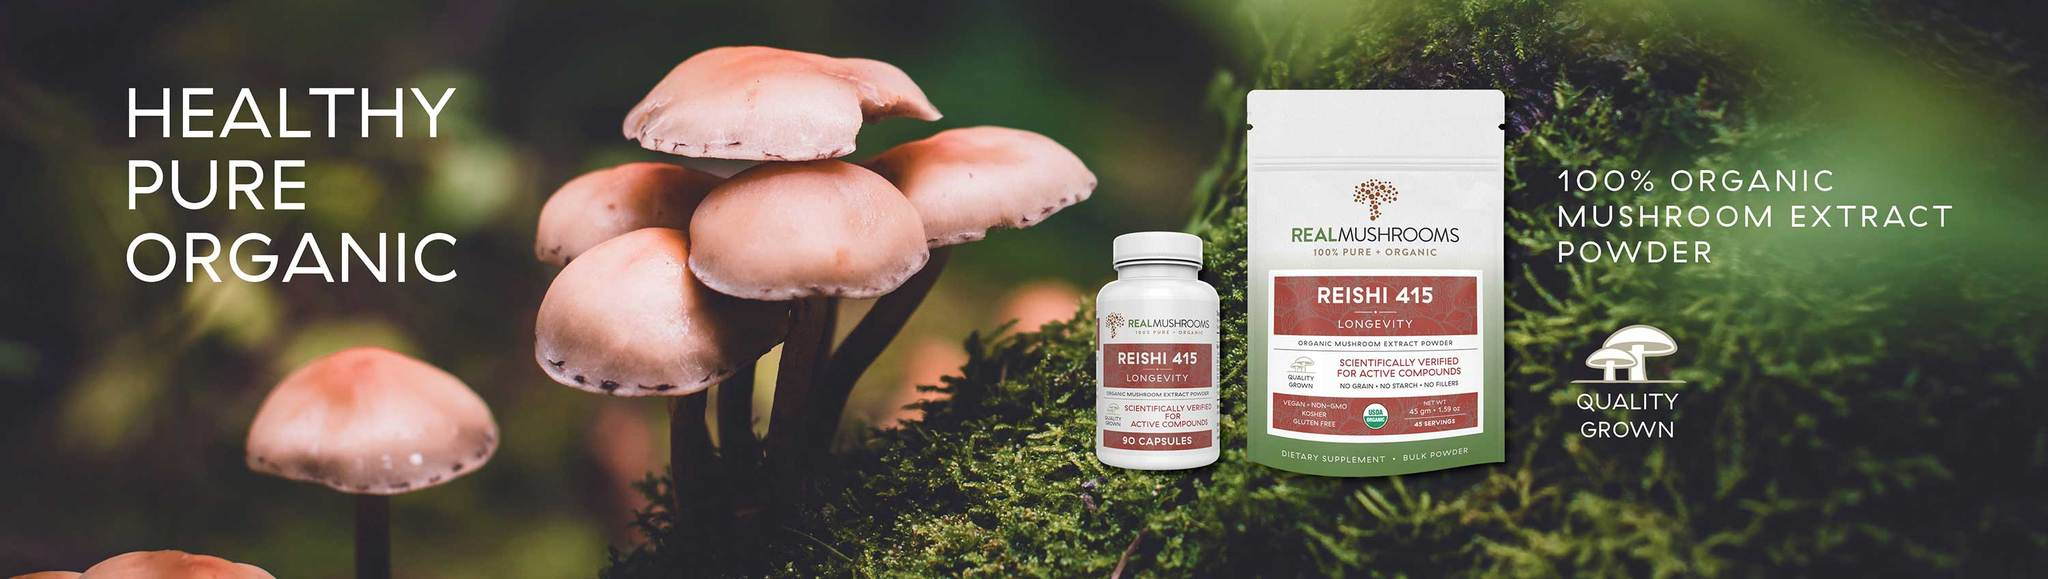 organic mushroom extract powders by real mushrooms